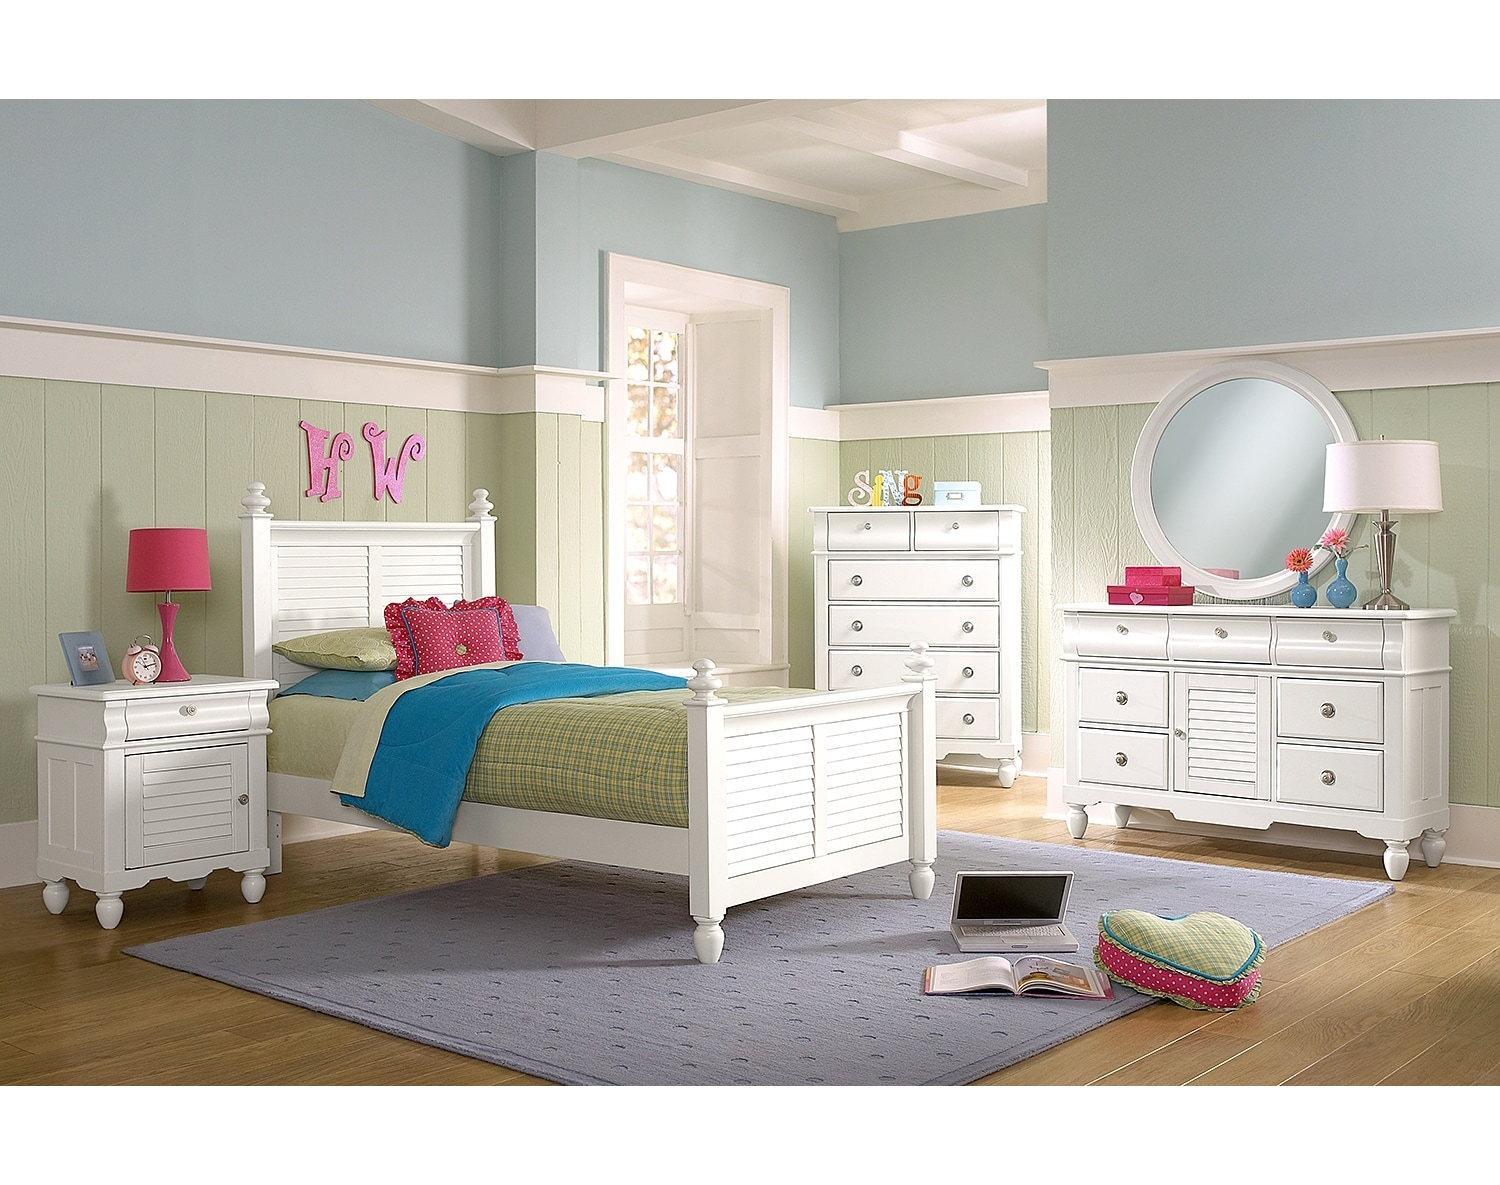 The Seaside Collection - White | Value City Furniture and Mattresses